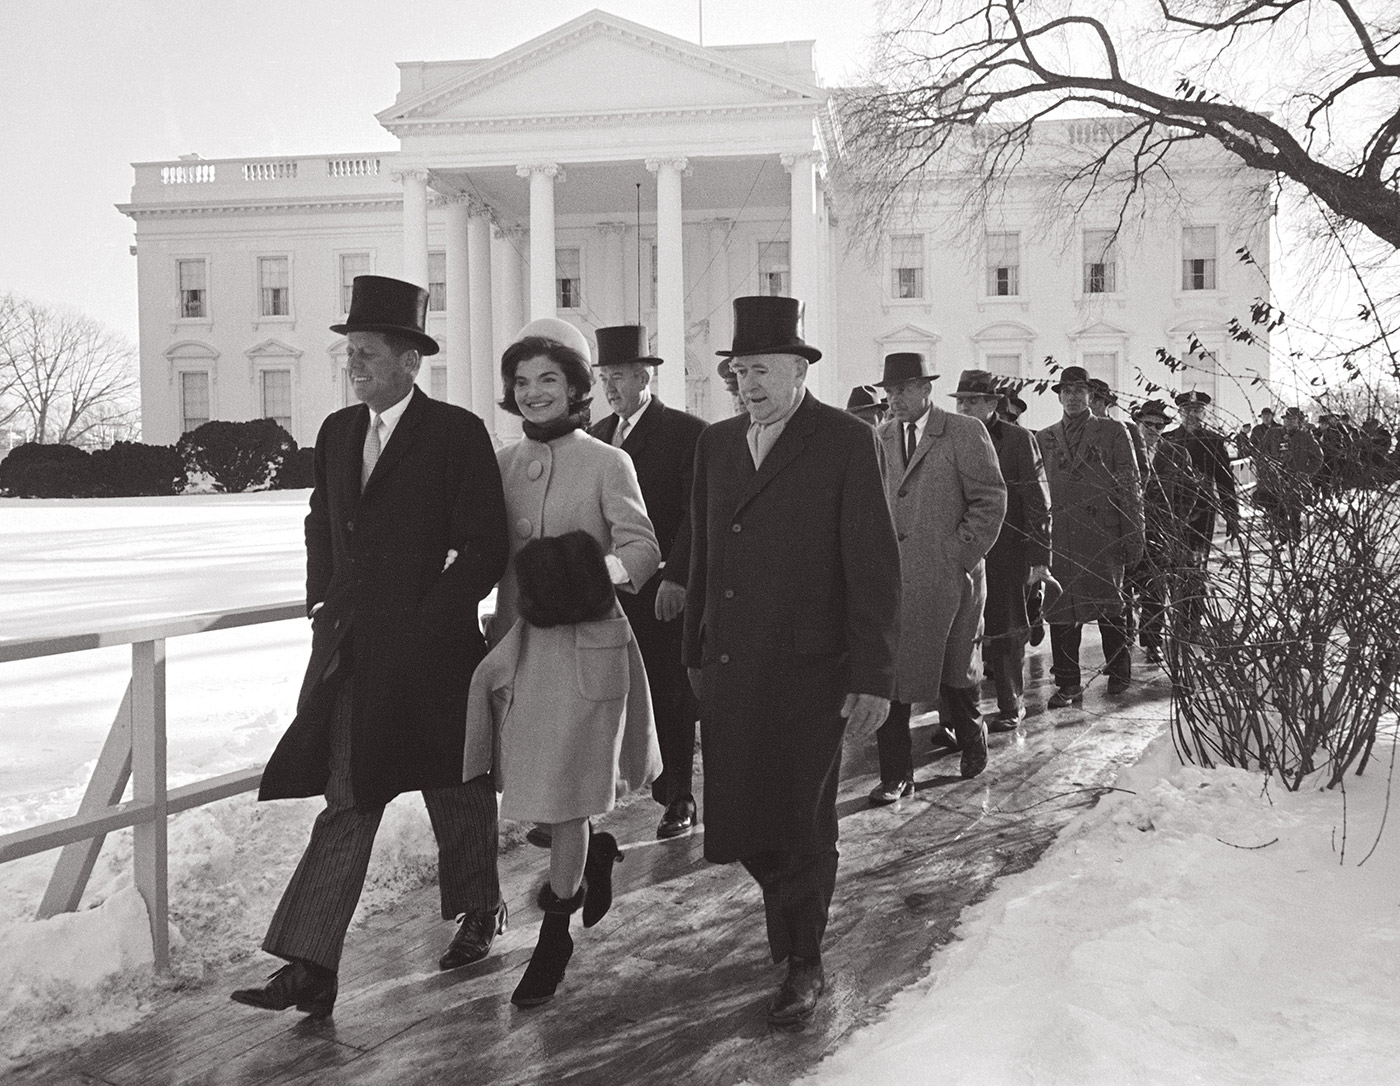 The First Couple head to the inauguration ceremony, Washington, DC, January 20, 1961. © Paul Schutzer (Courtesy The LIFE Picture Collection/Getty Images)